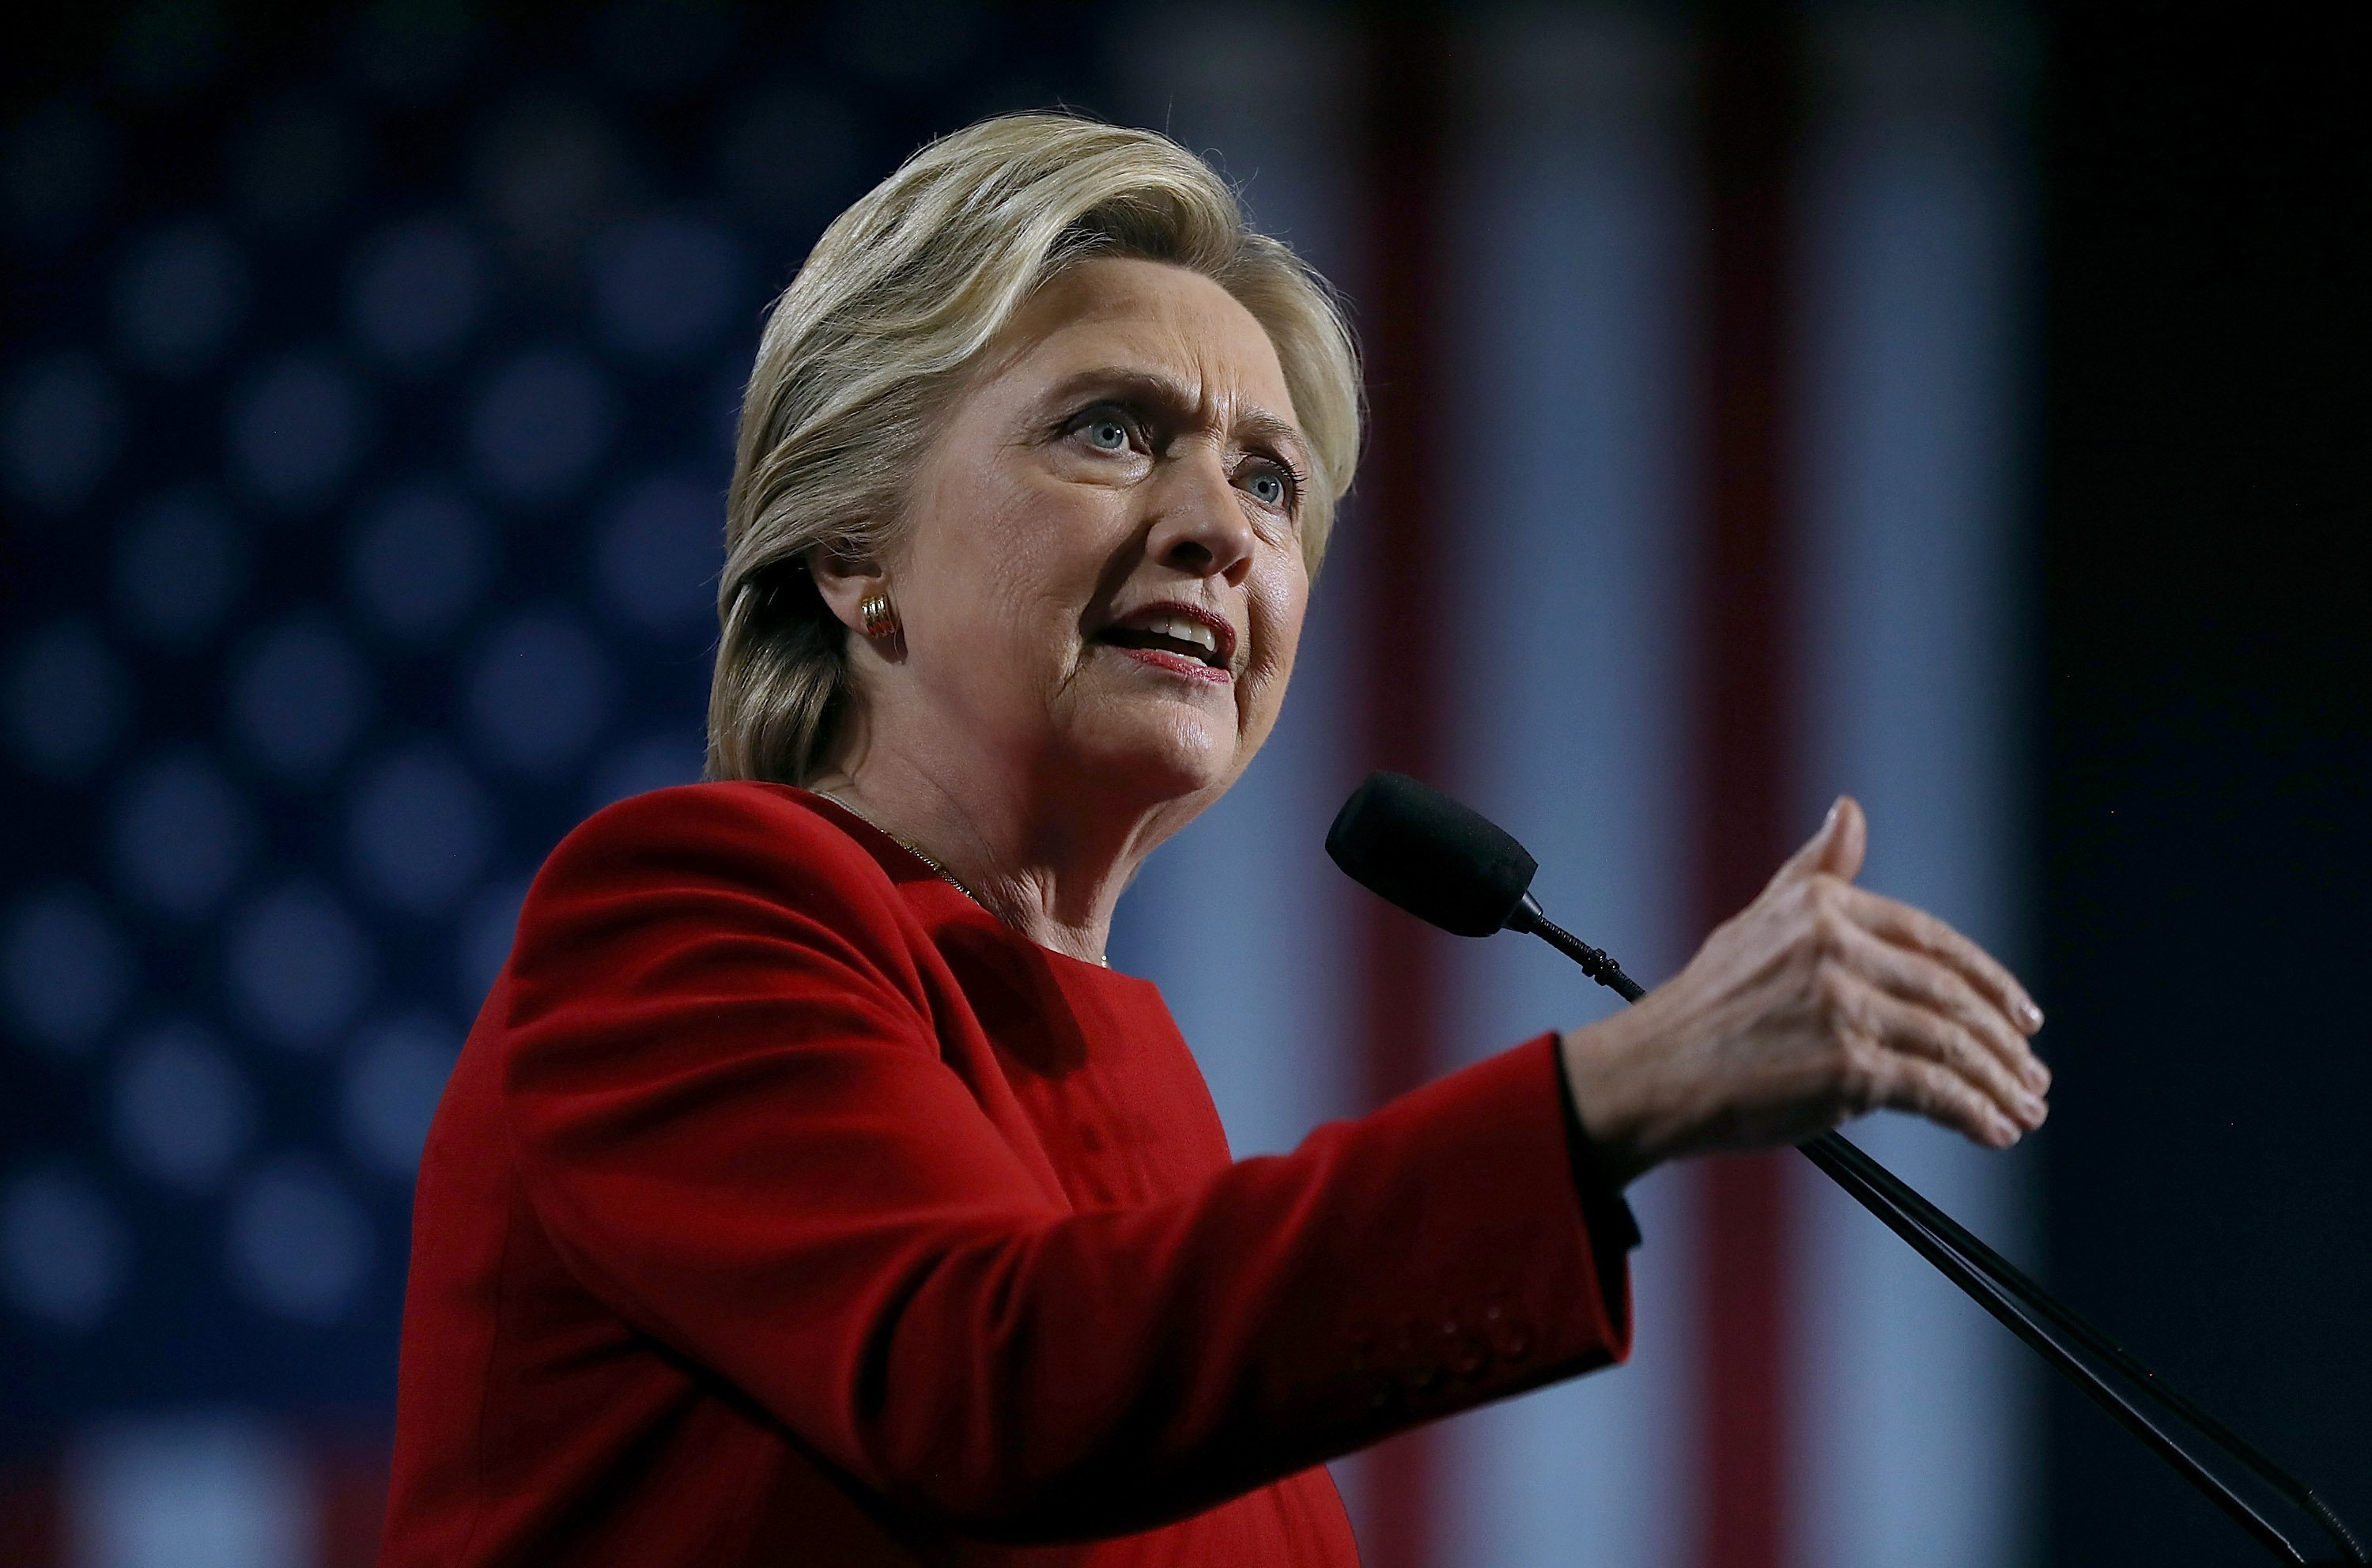 The Justice Department's inspector general will issue a report on how top federal officials handled the investigation into Hillary Clinton's use of a private email server while secretary of state.